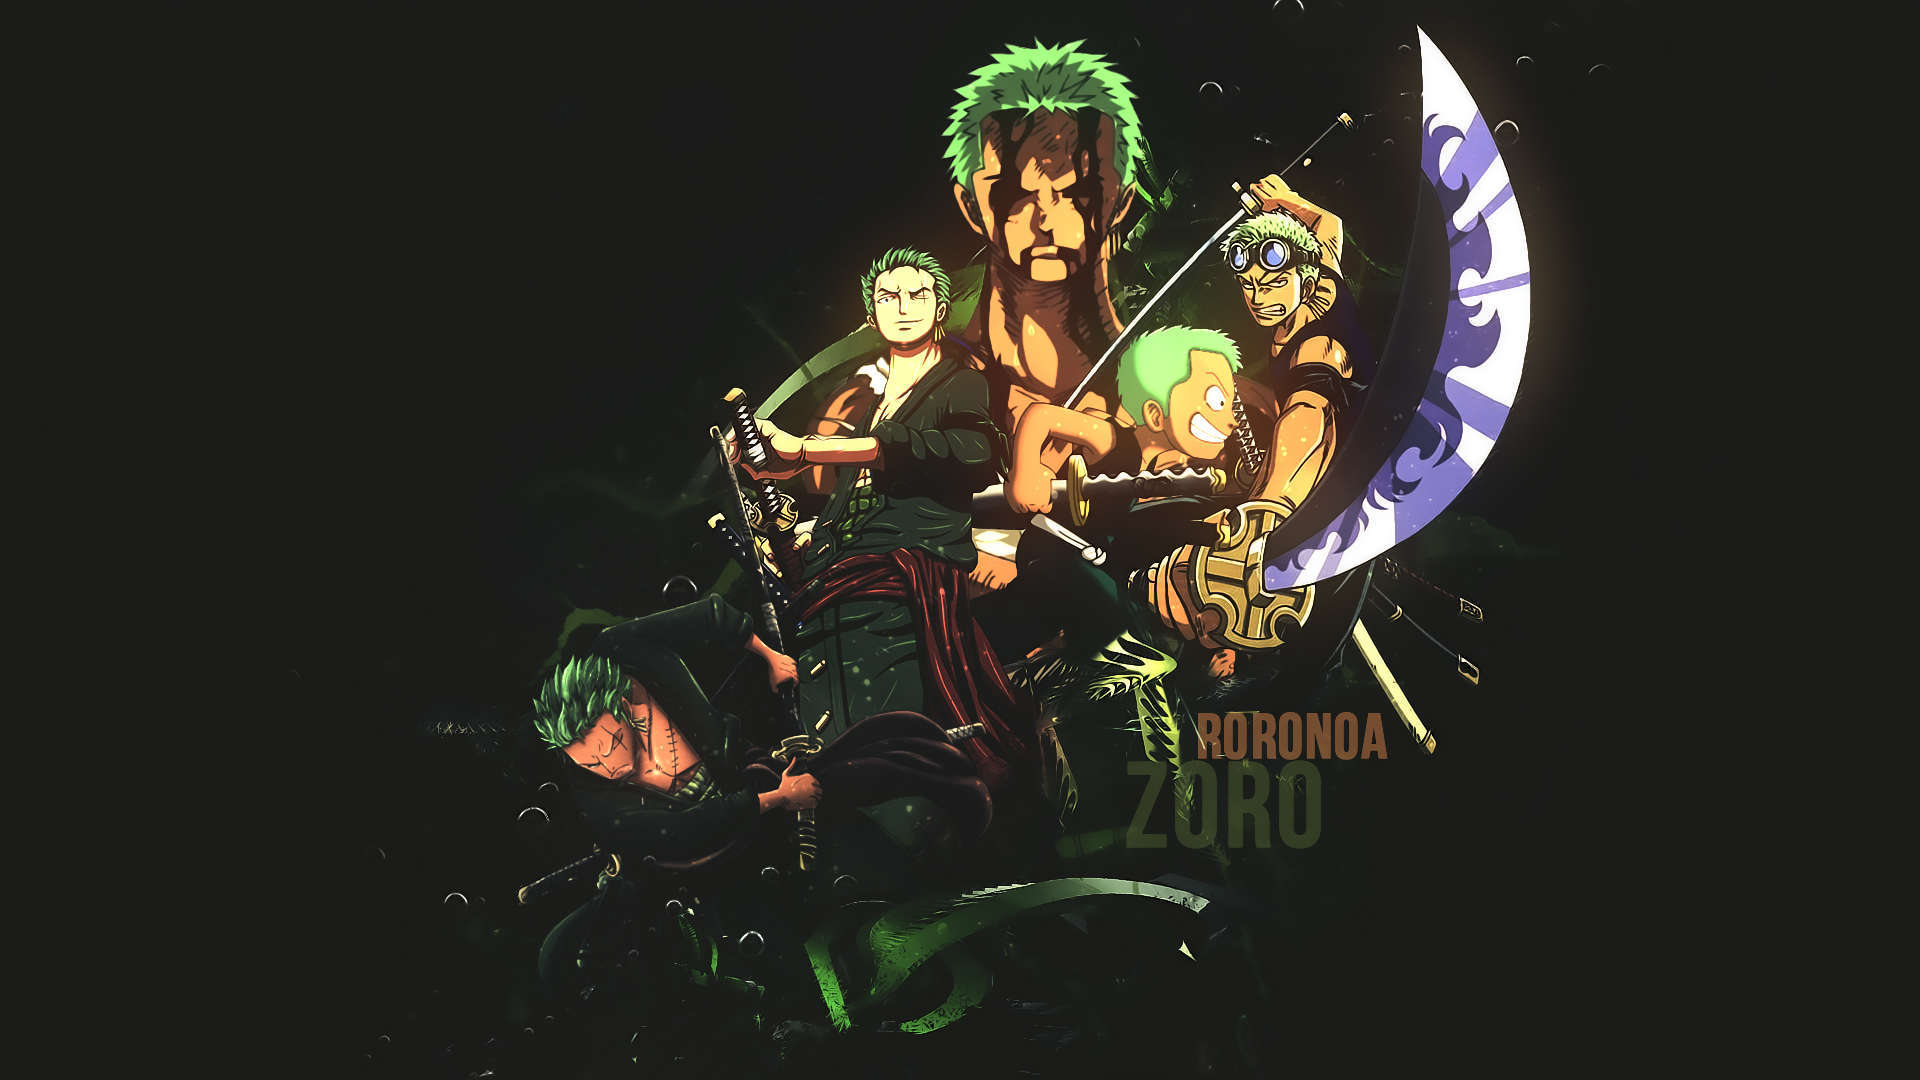 Onepiece Zoro Hd Wallpapers 7 Amb One Piece Epic Zoro 1920x1080 Download Hd Wallpaper Wallpapertip